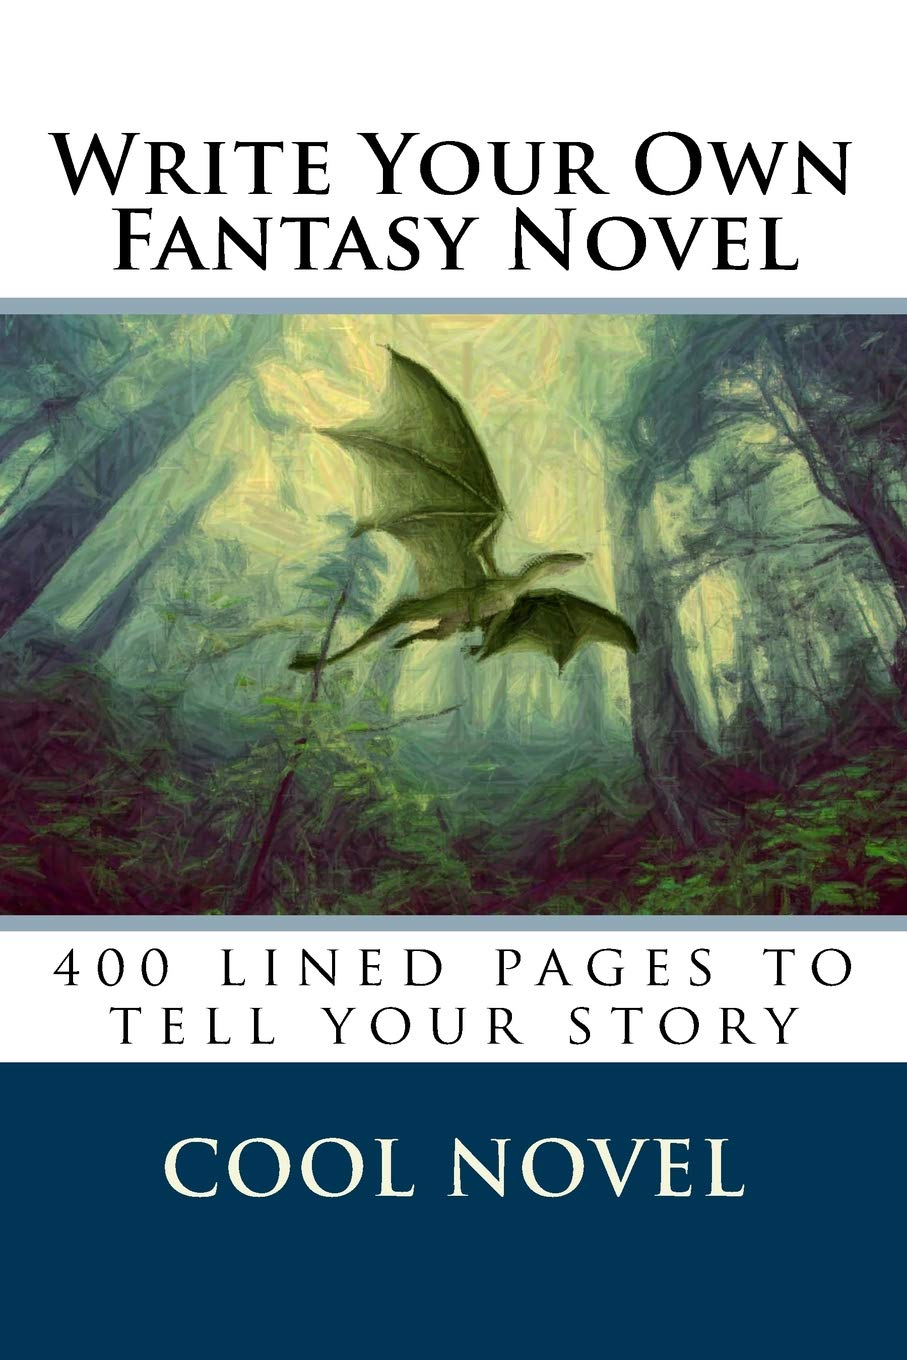 Write Your Own Fantasy Novel: 400 lined pages to tell your